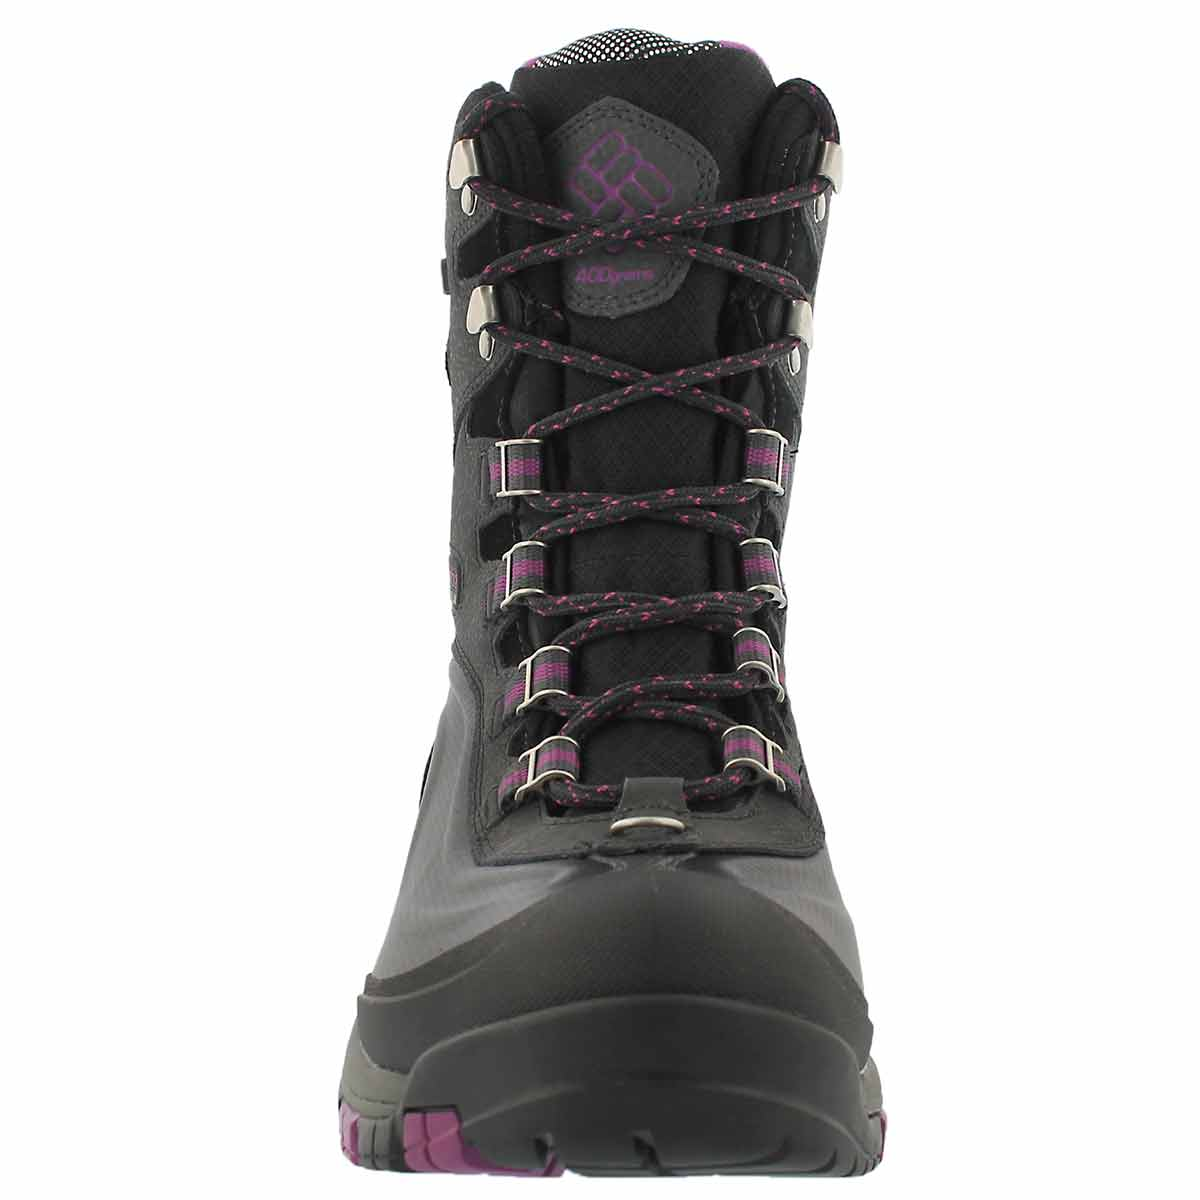 Lds BugabootPlusTitanium bk wp wntr boot